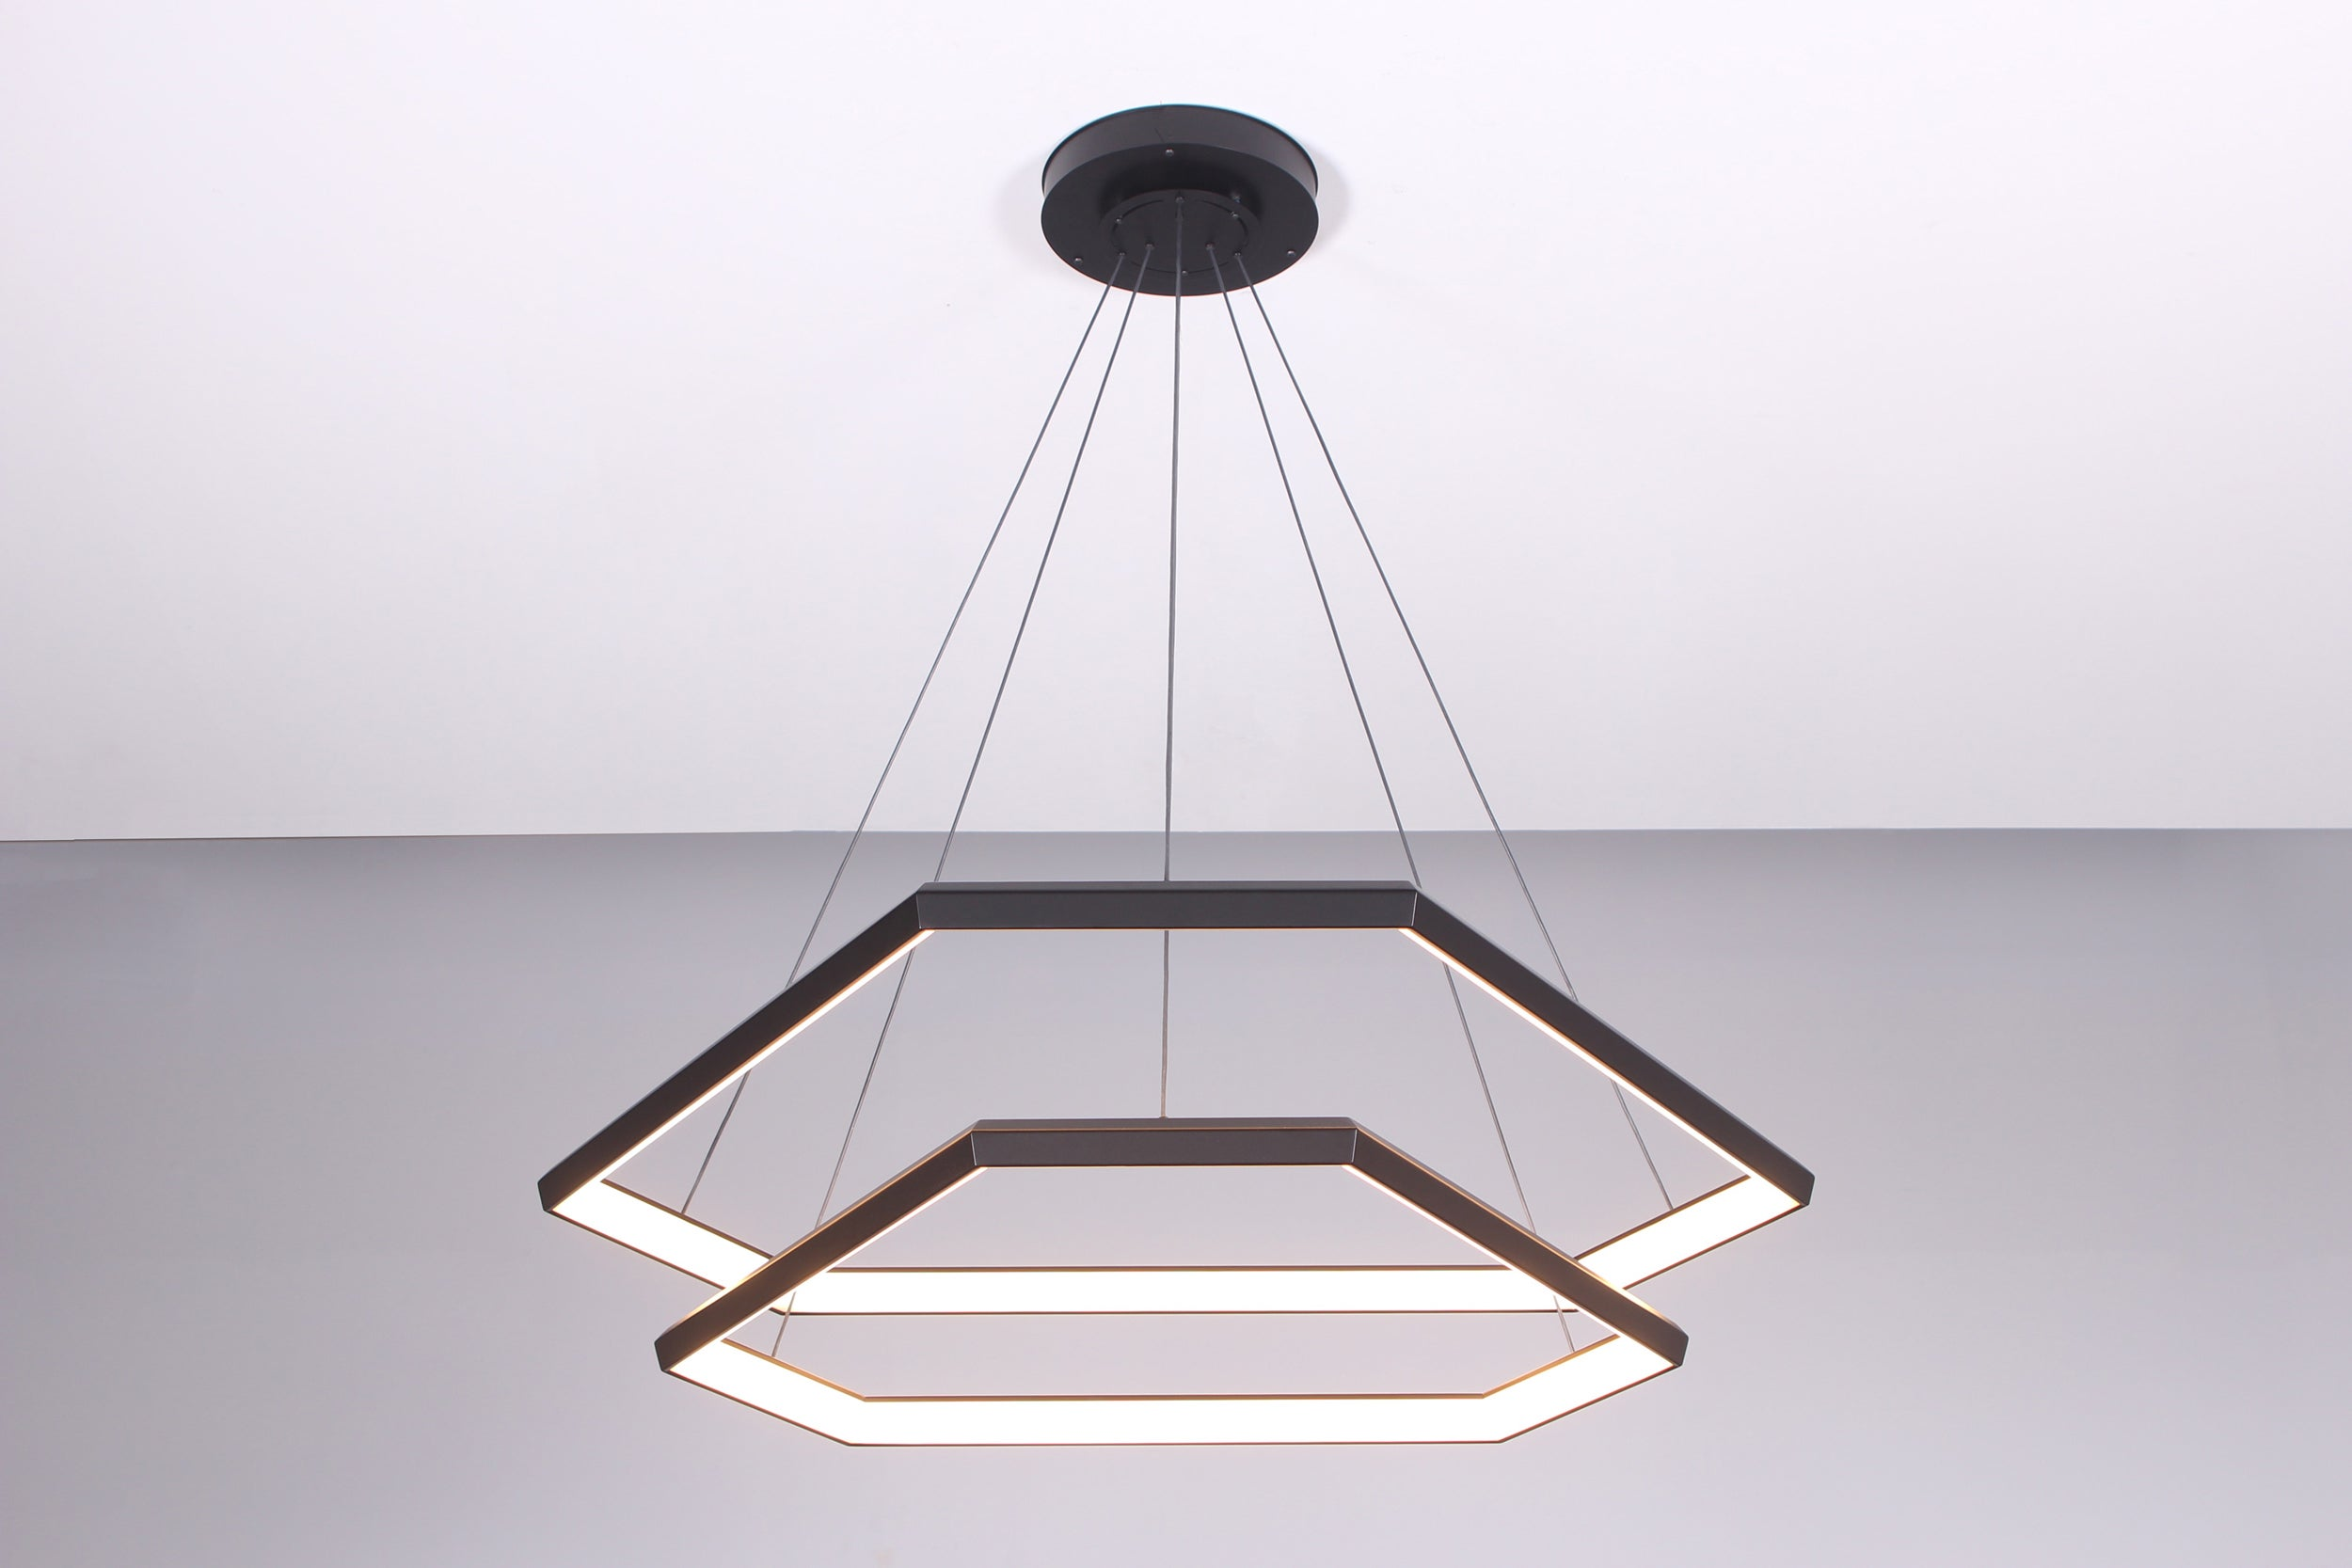 Ditri cascade dxc43 hexagon modern chandelier light fixture